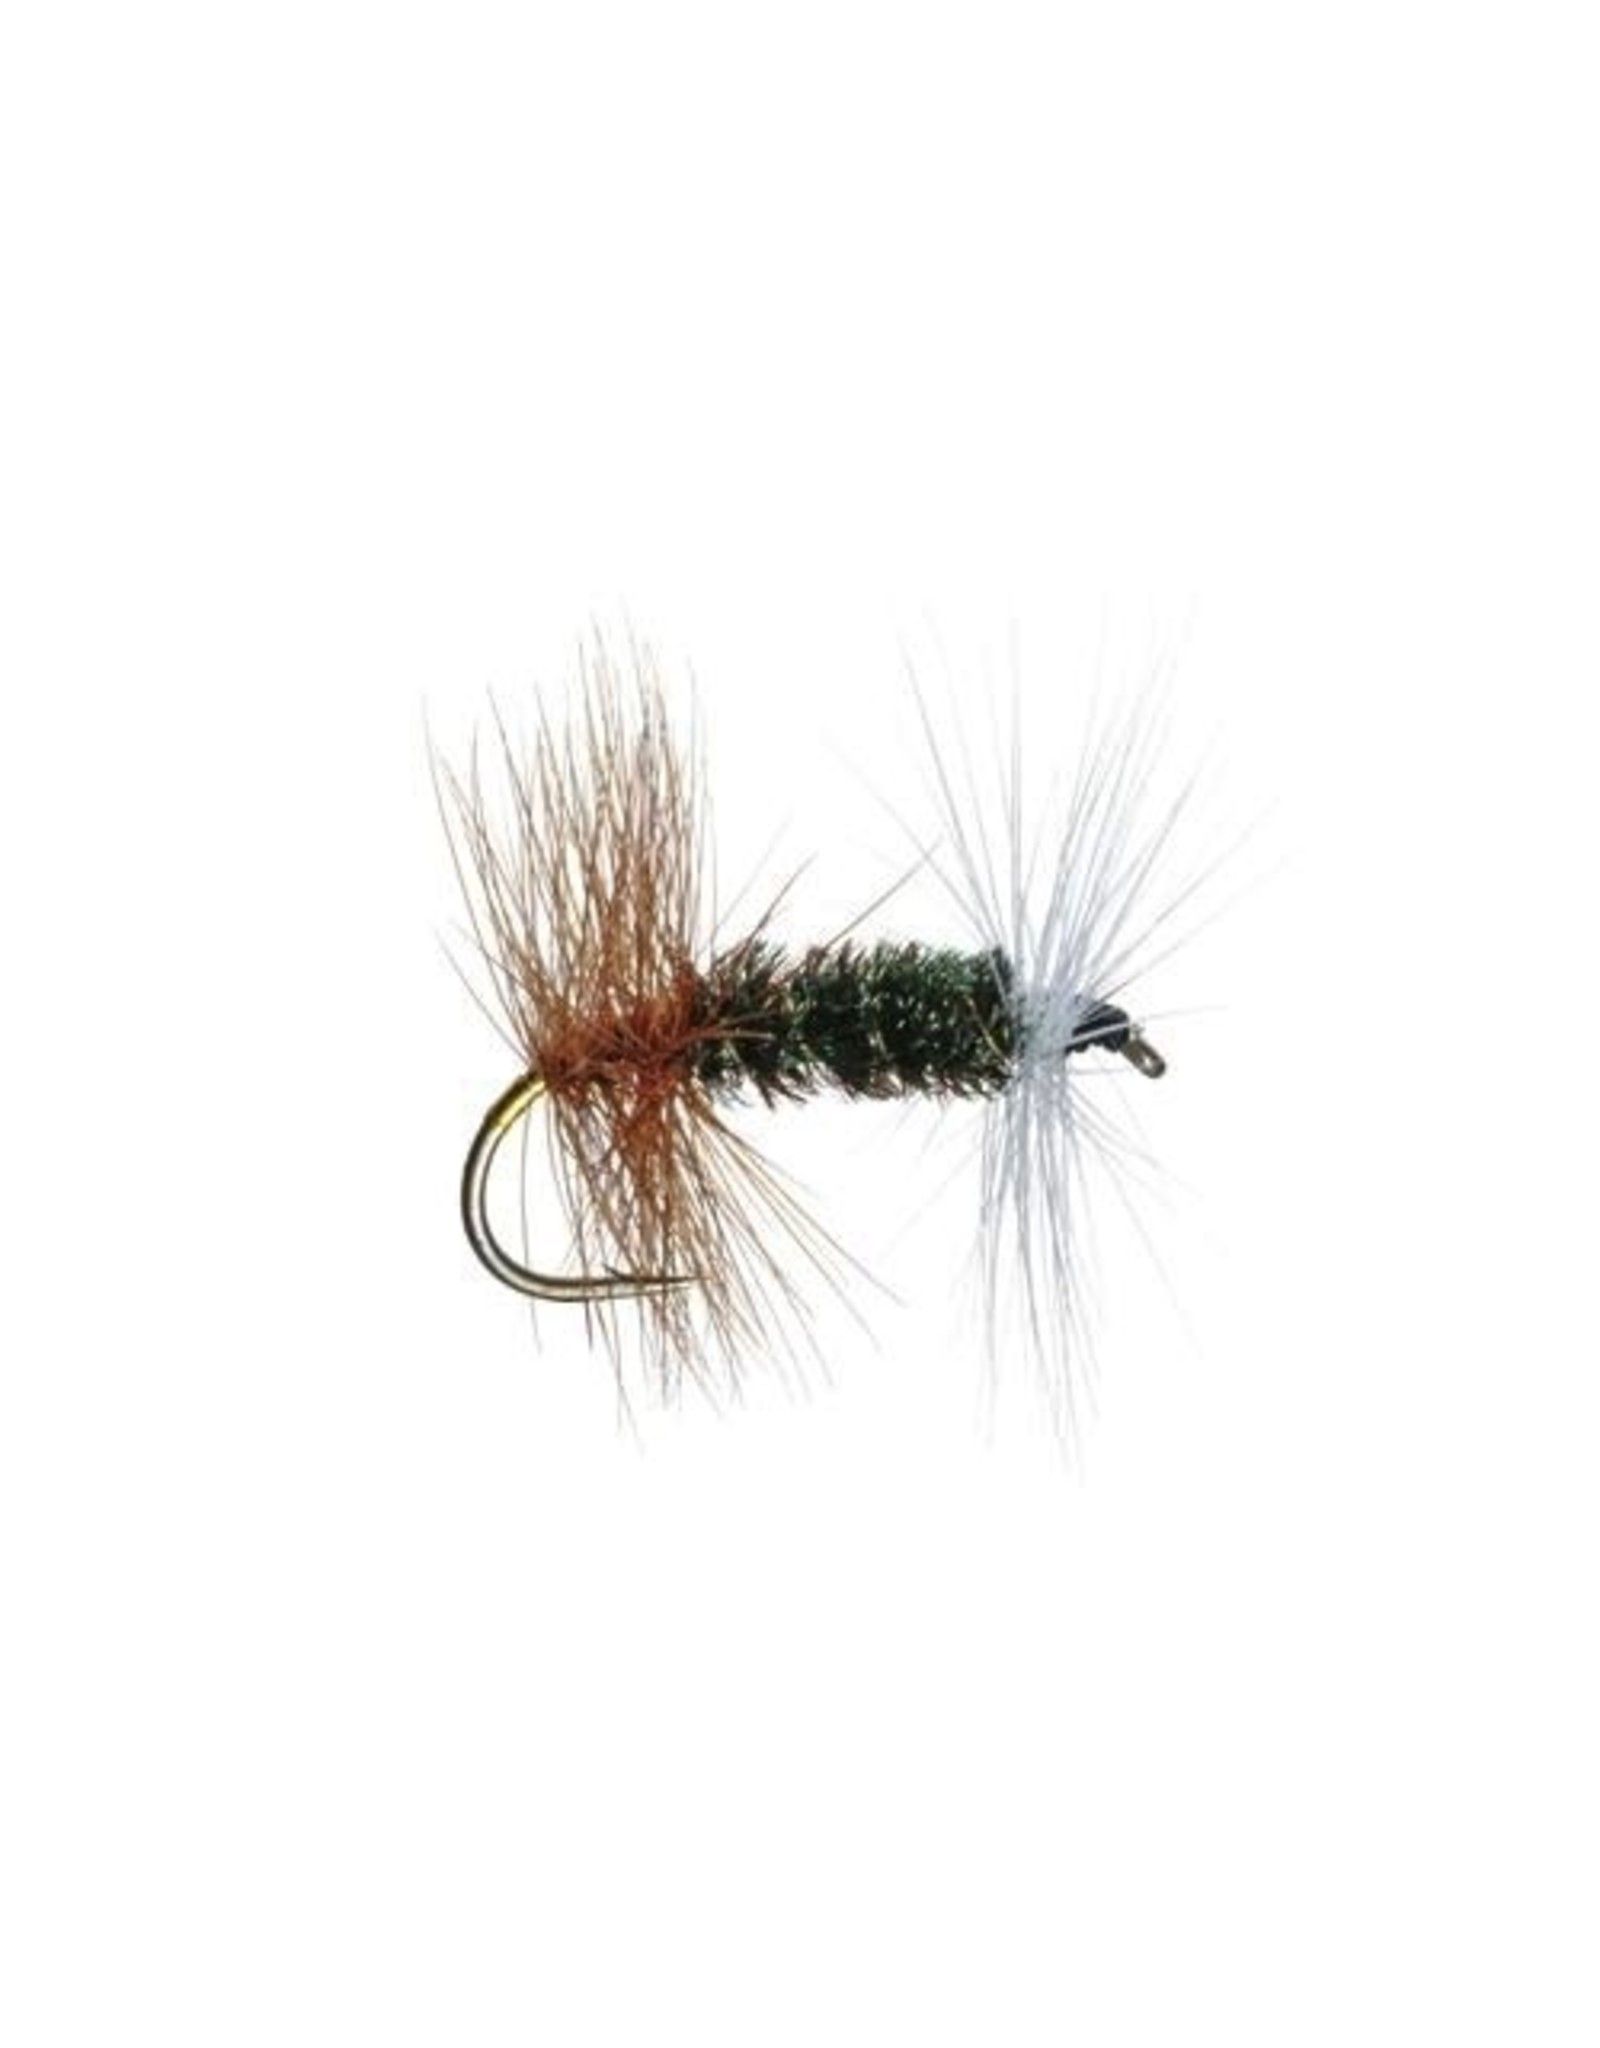 Umpqua Renegade (3 Pack)